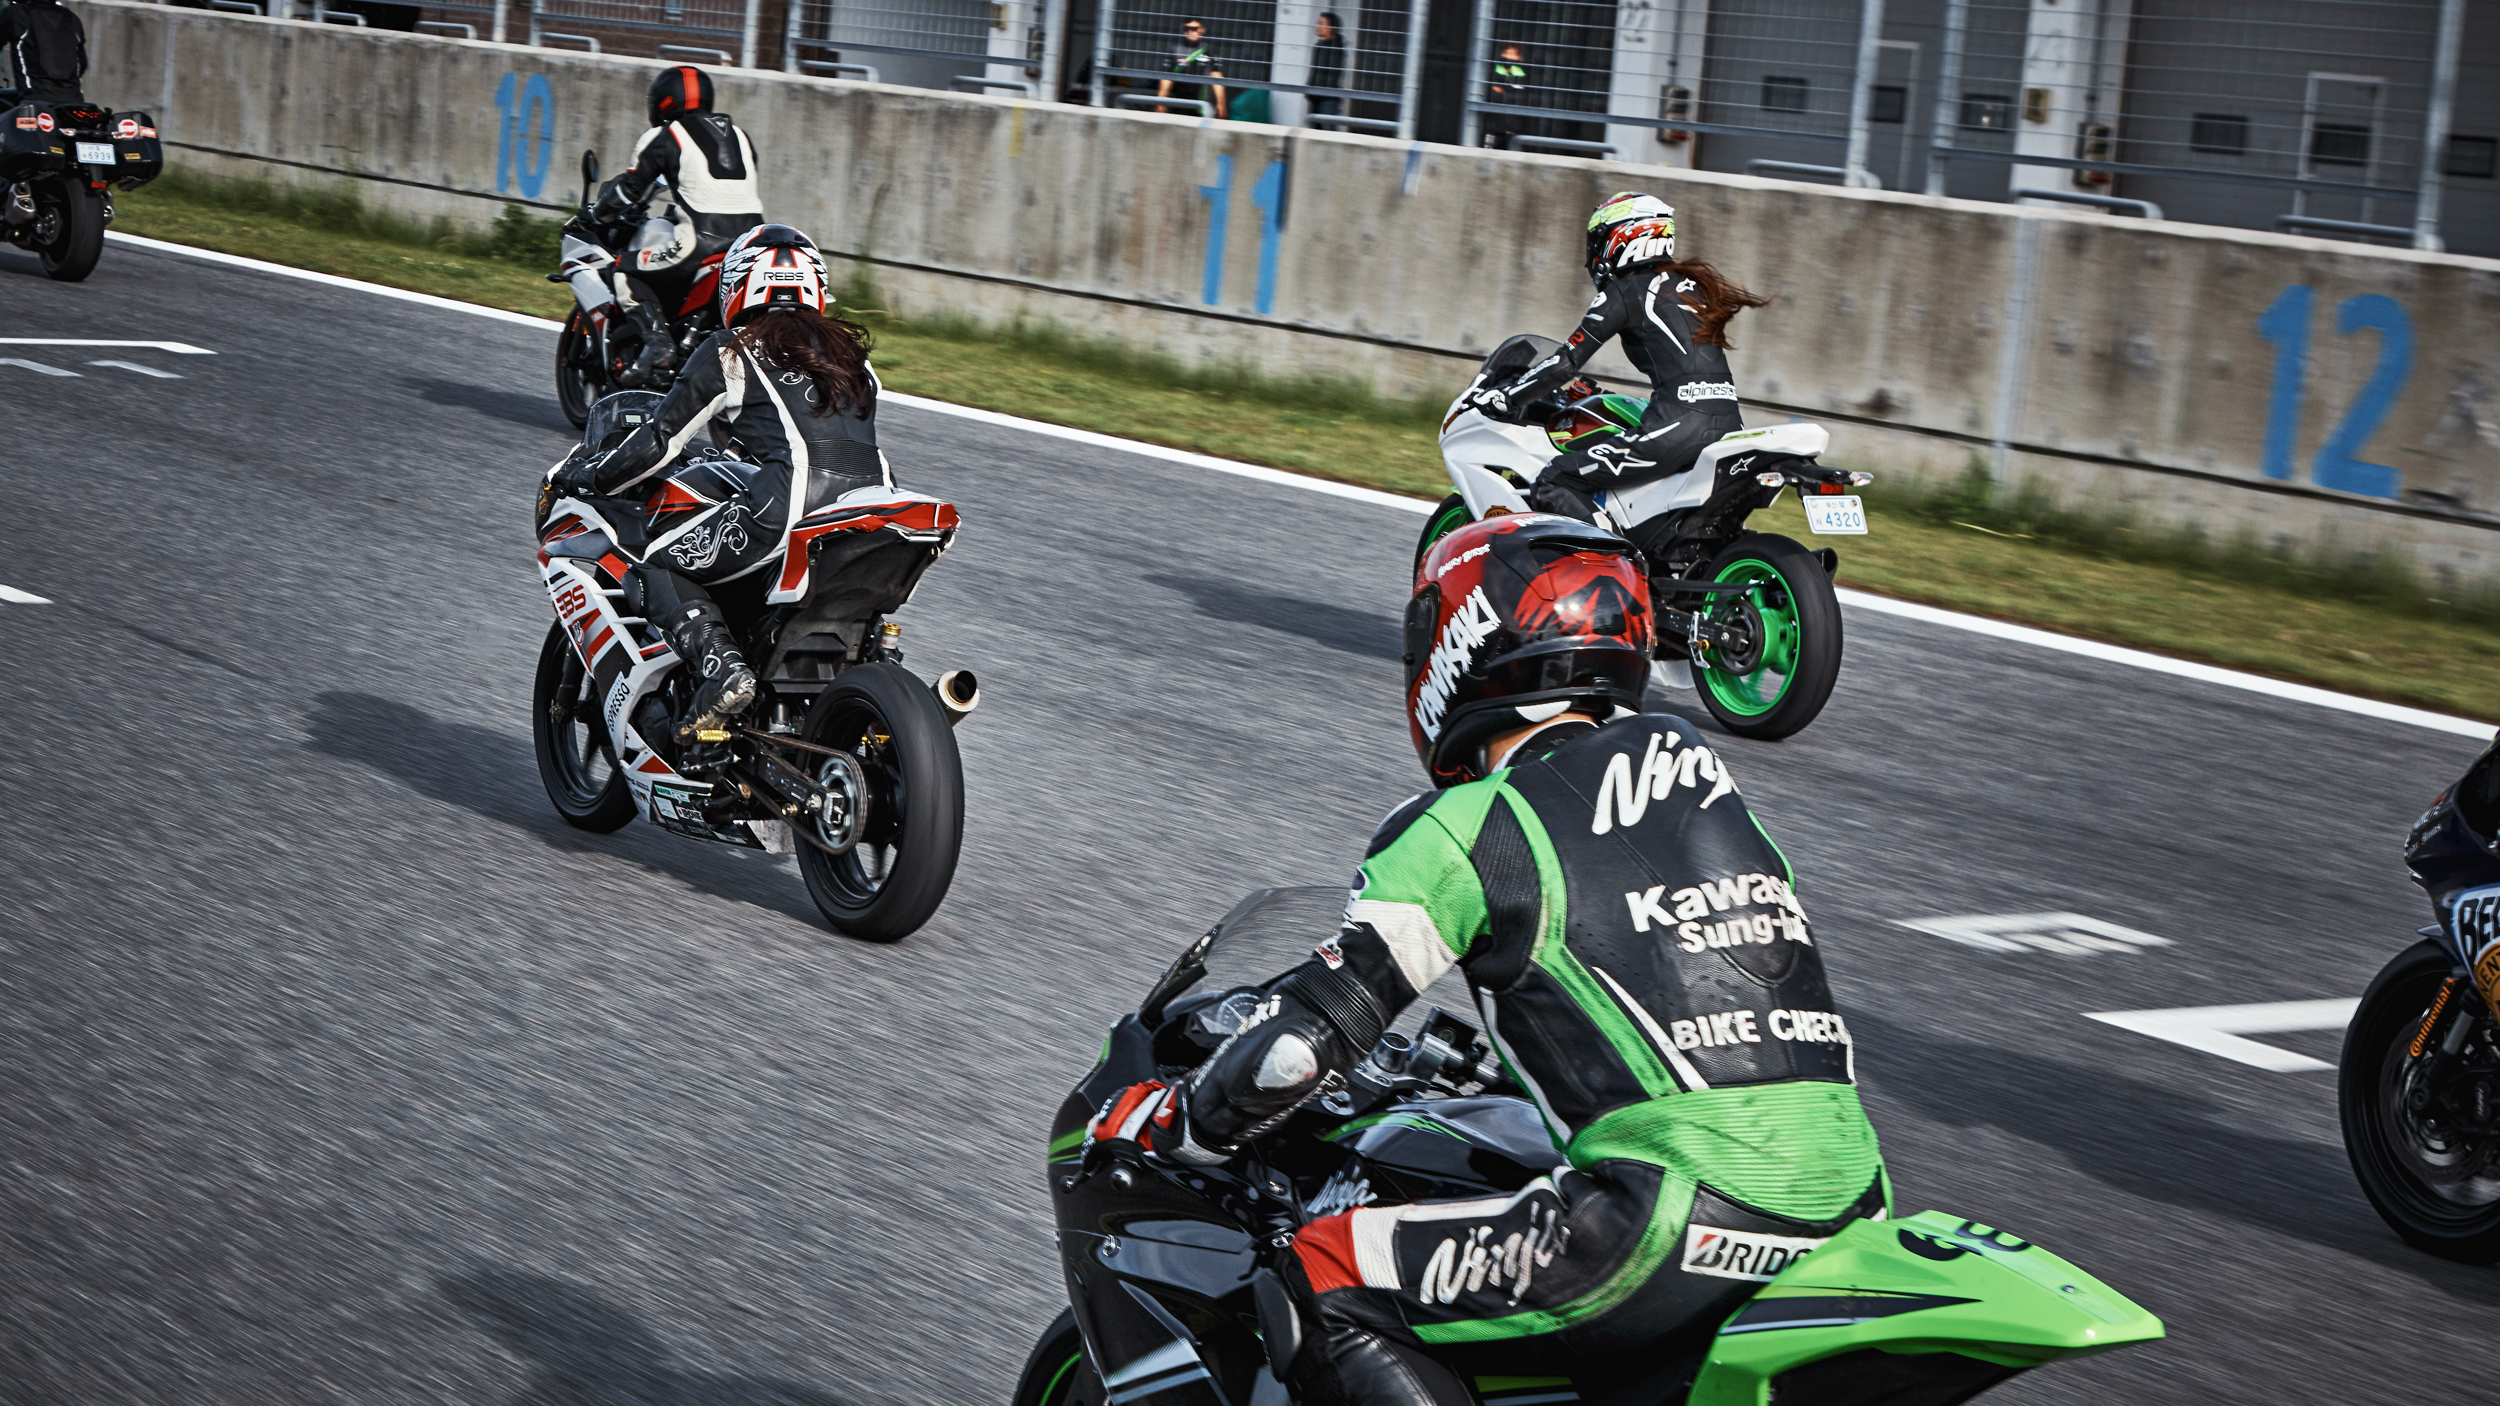 2018. Kawasaki track ride day